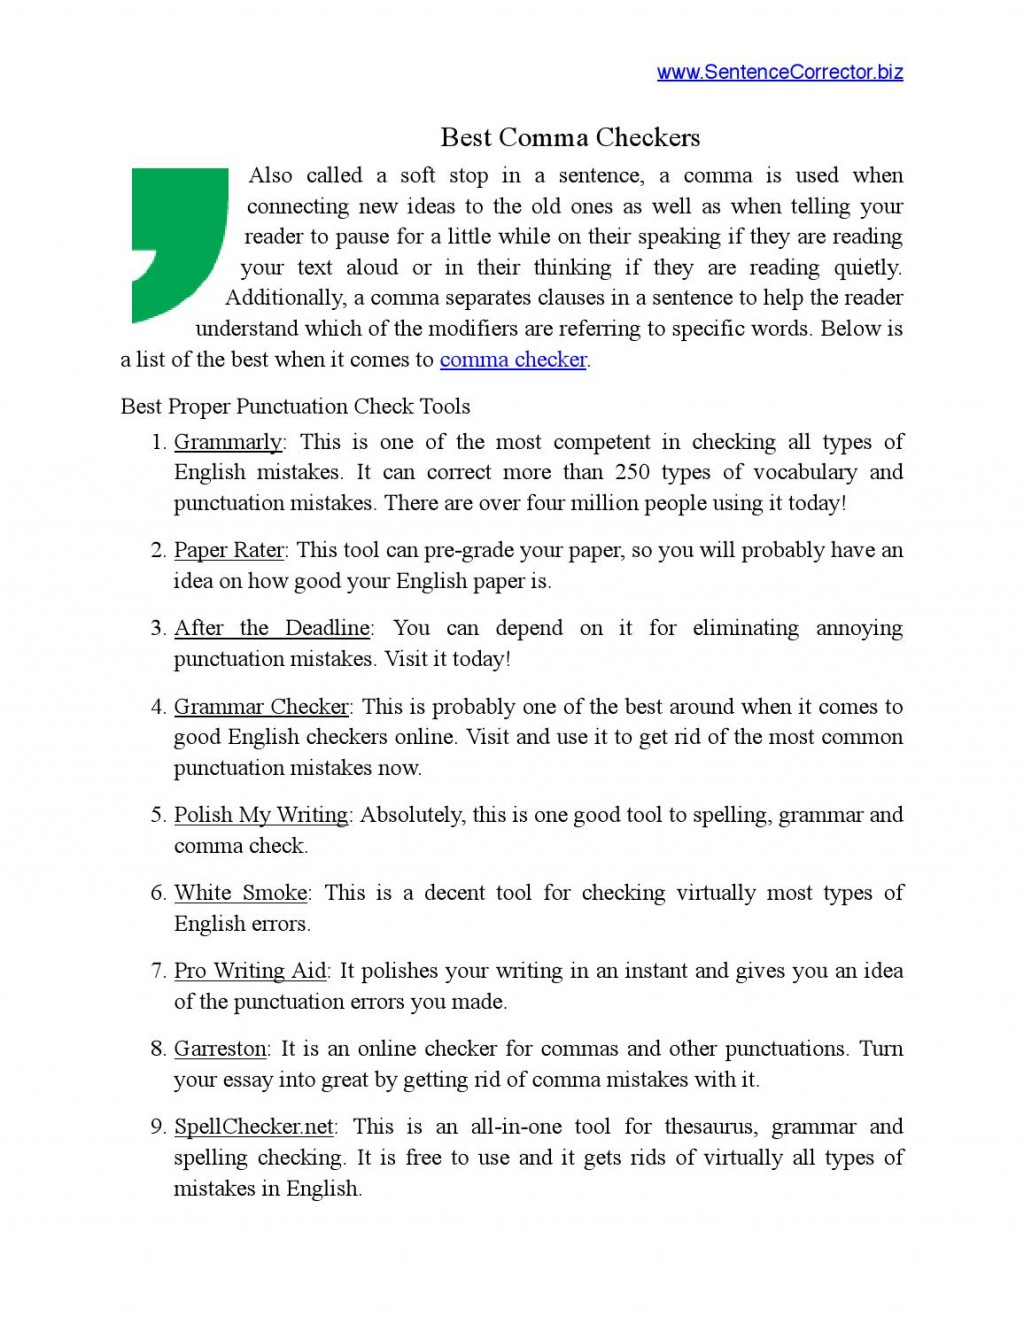 009 Check Essay Example Page 1 Archaicawful My For Punctuation Errors Free On Turnitin Grammar Large